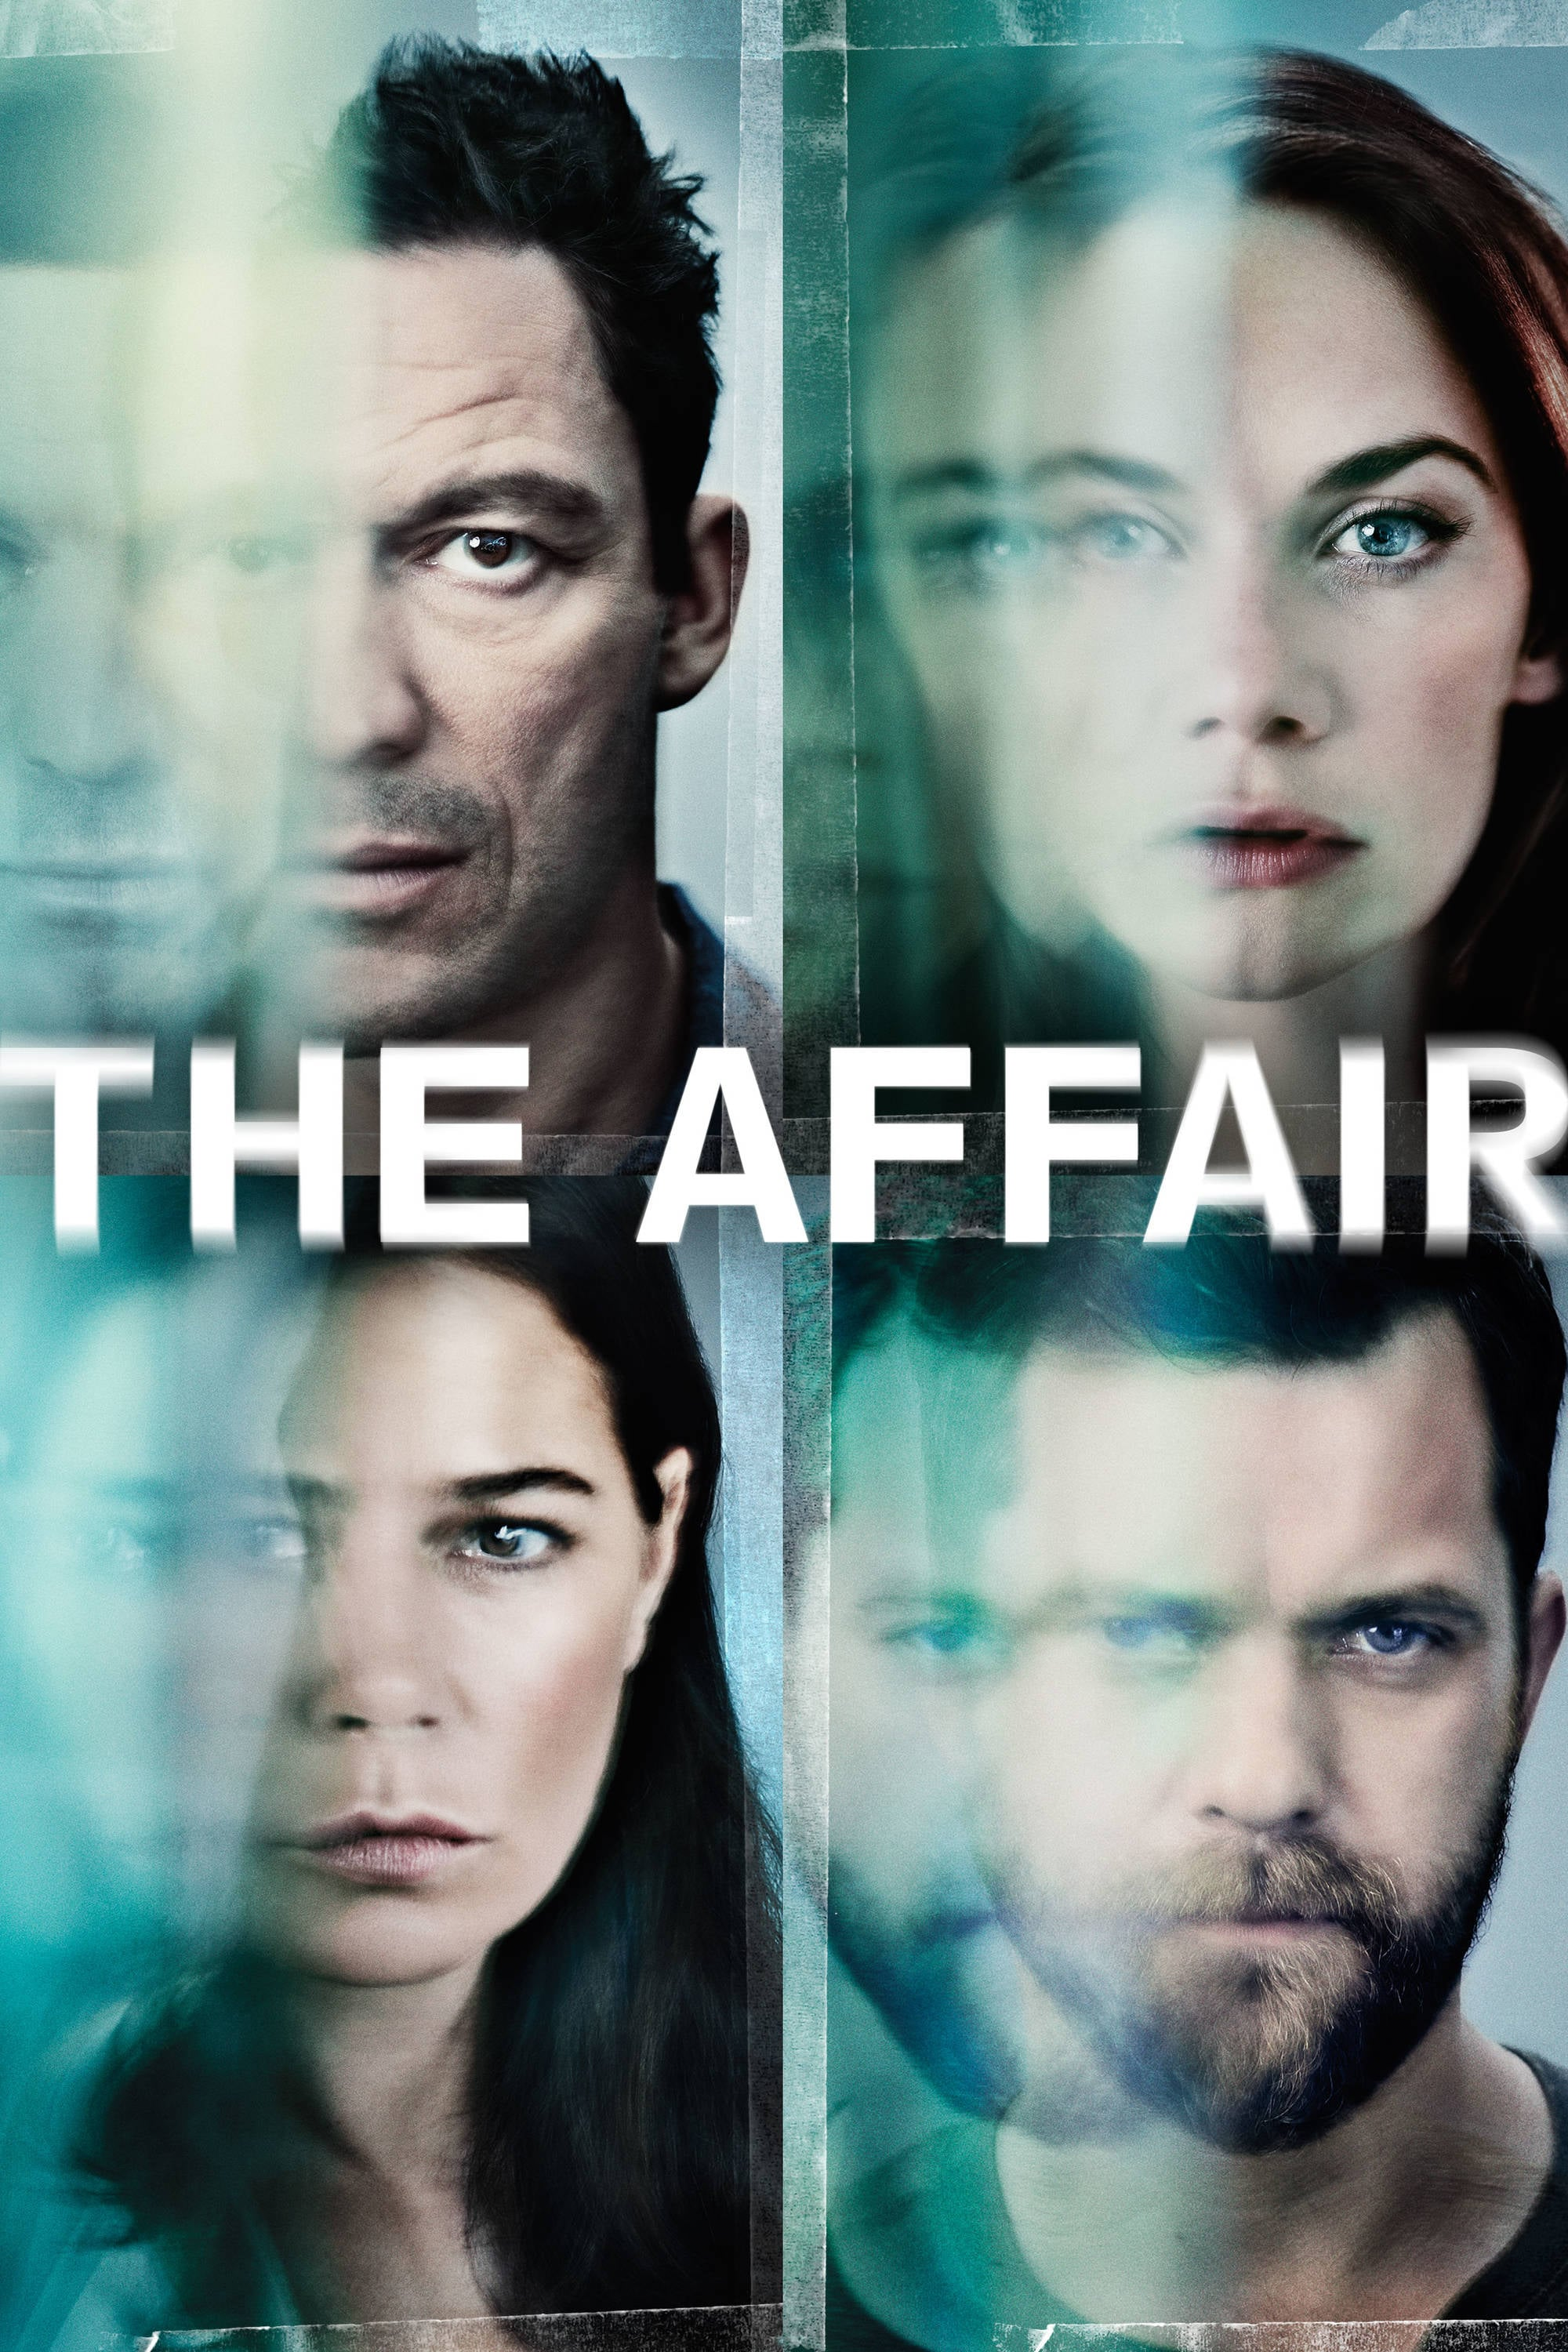 Joshua Jackson, Maura Tierney, Dominic West, and Ruth Wilson in The Affair (2014)